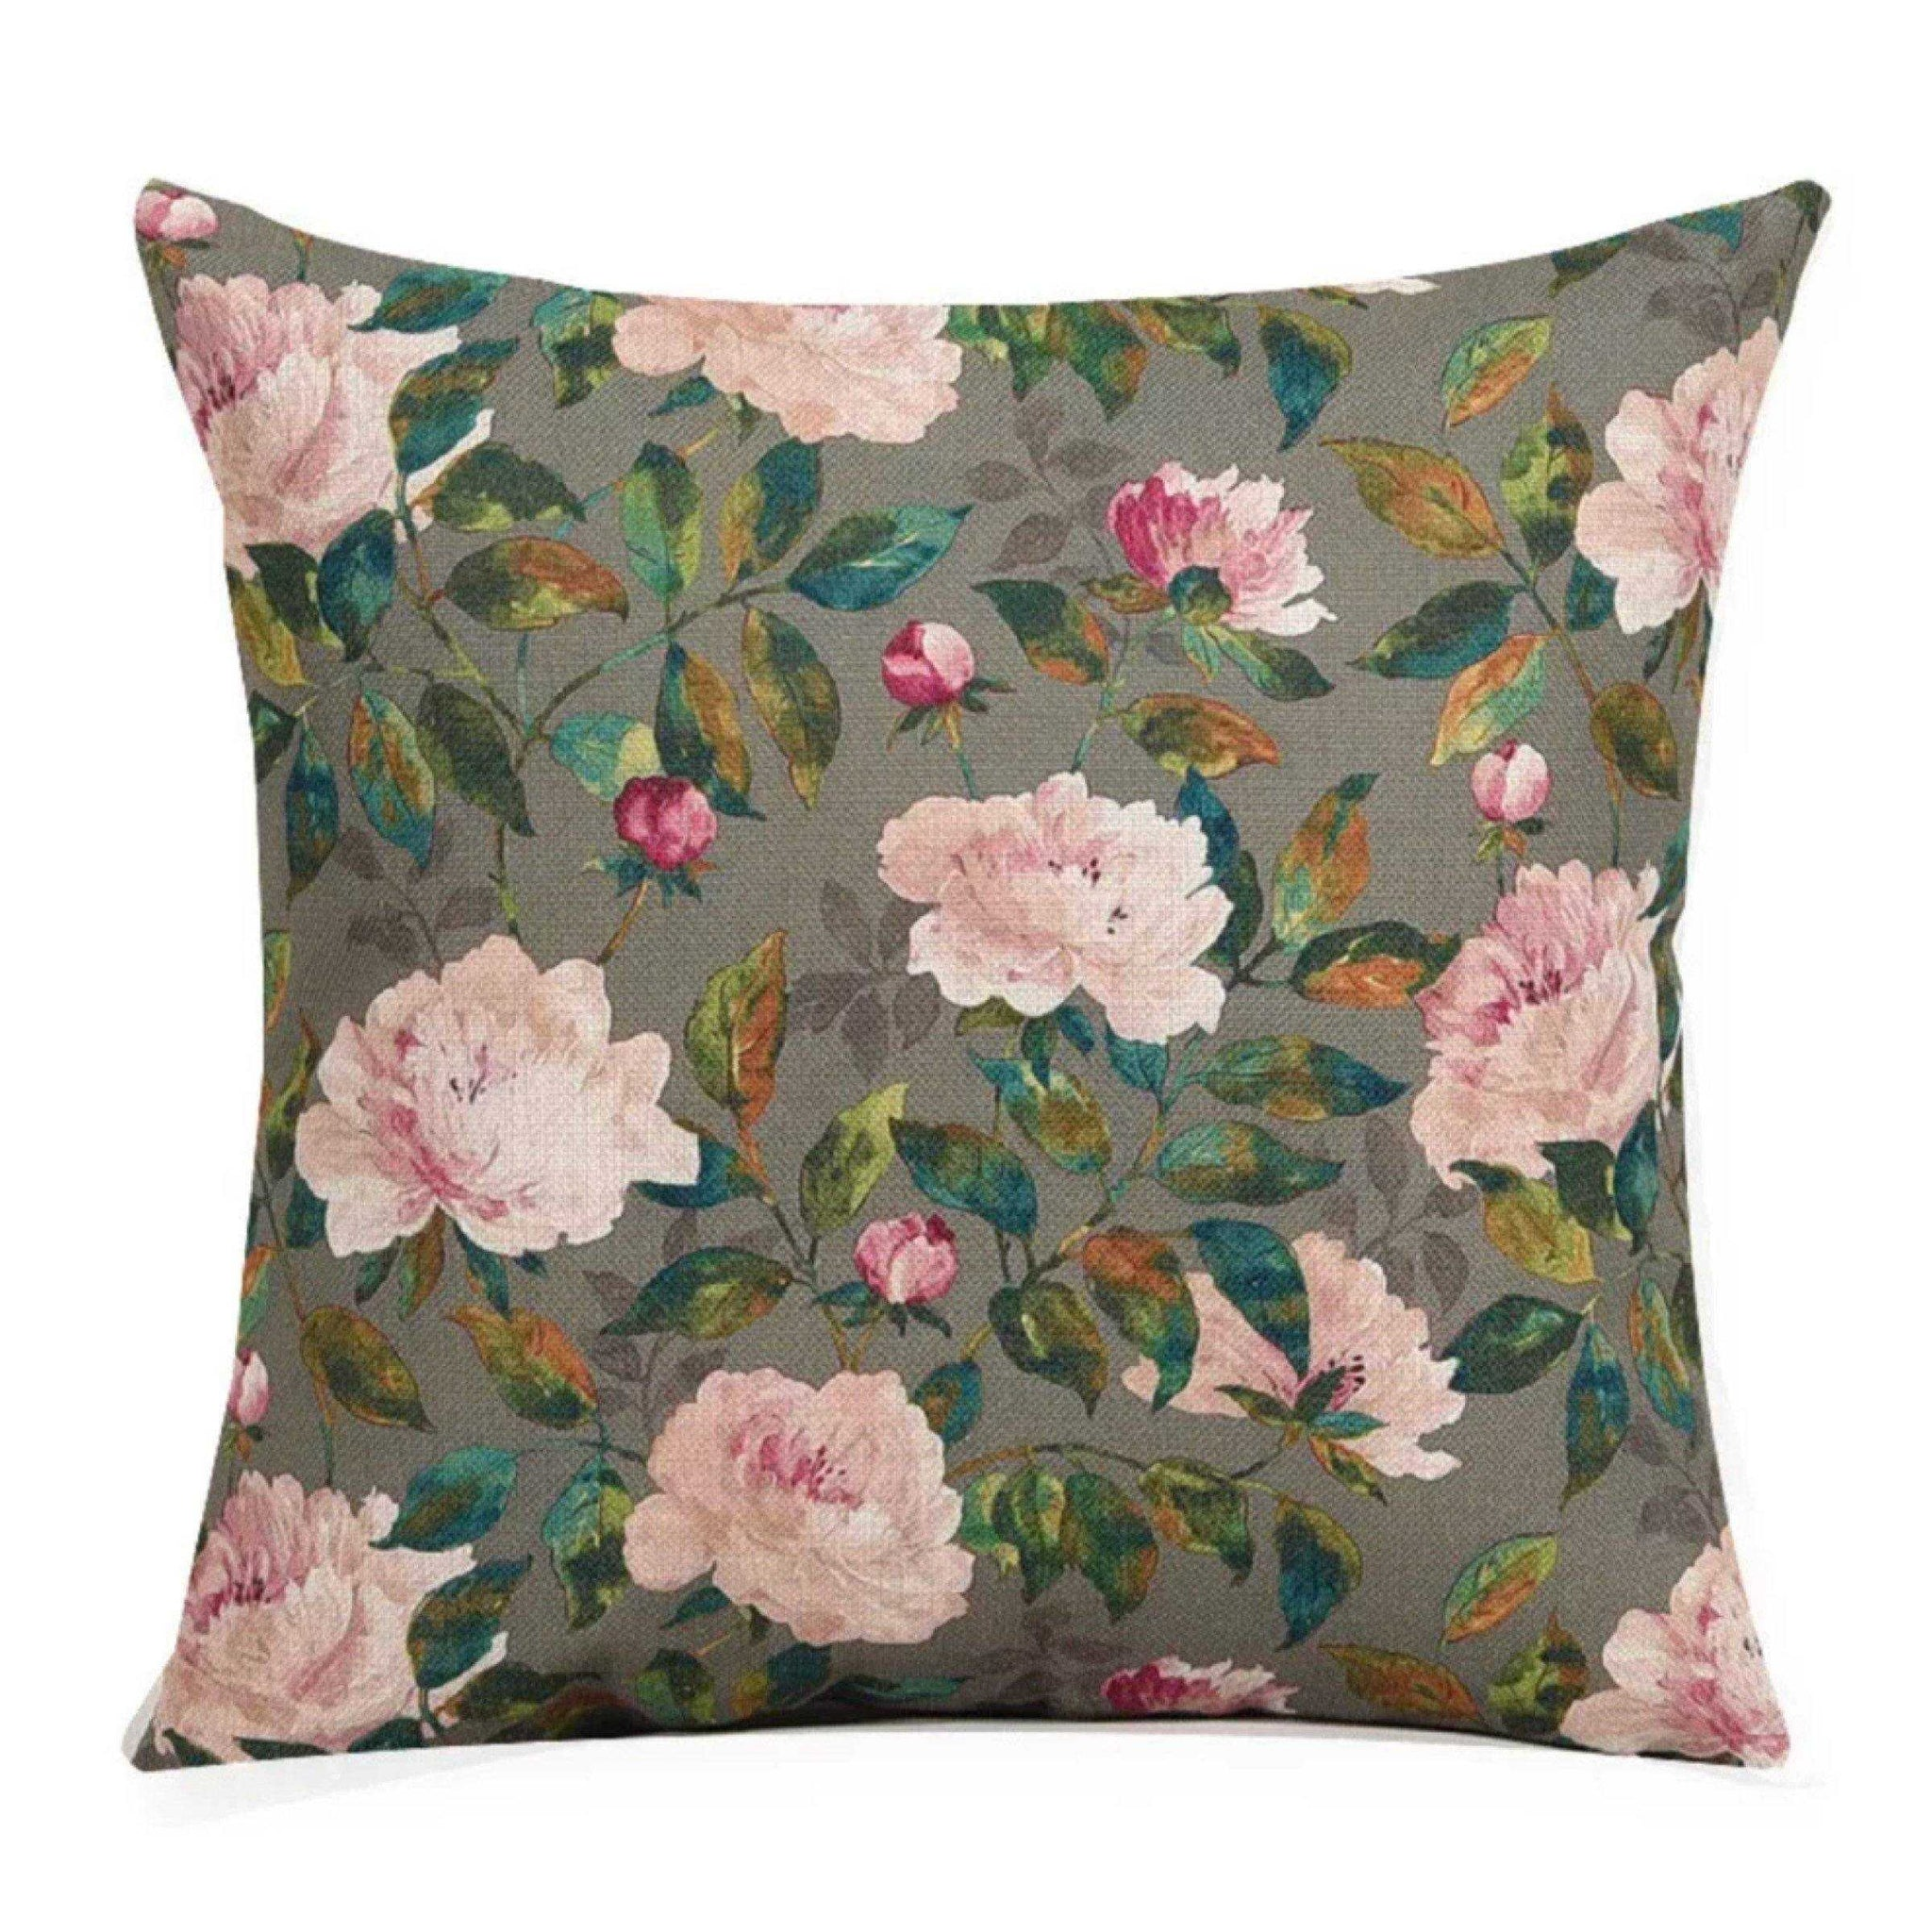 Cushion Pillow Light Pink Floral Flowers - The Renmy Store